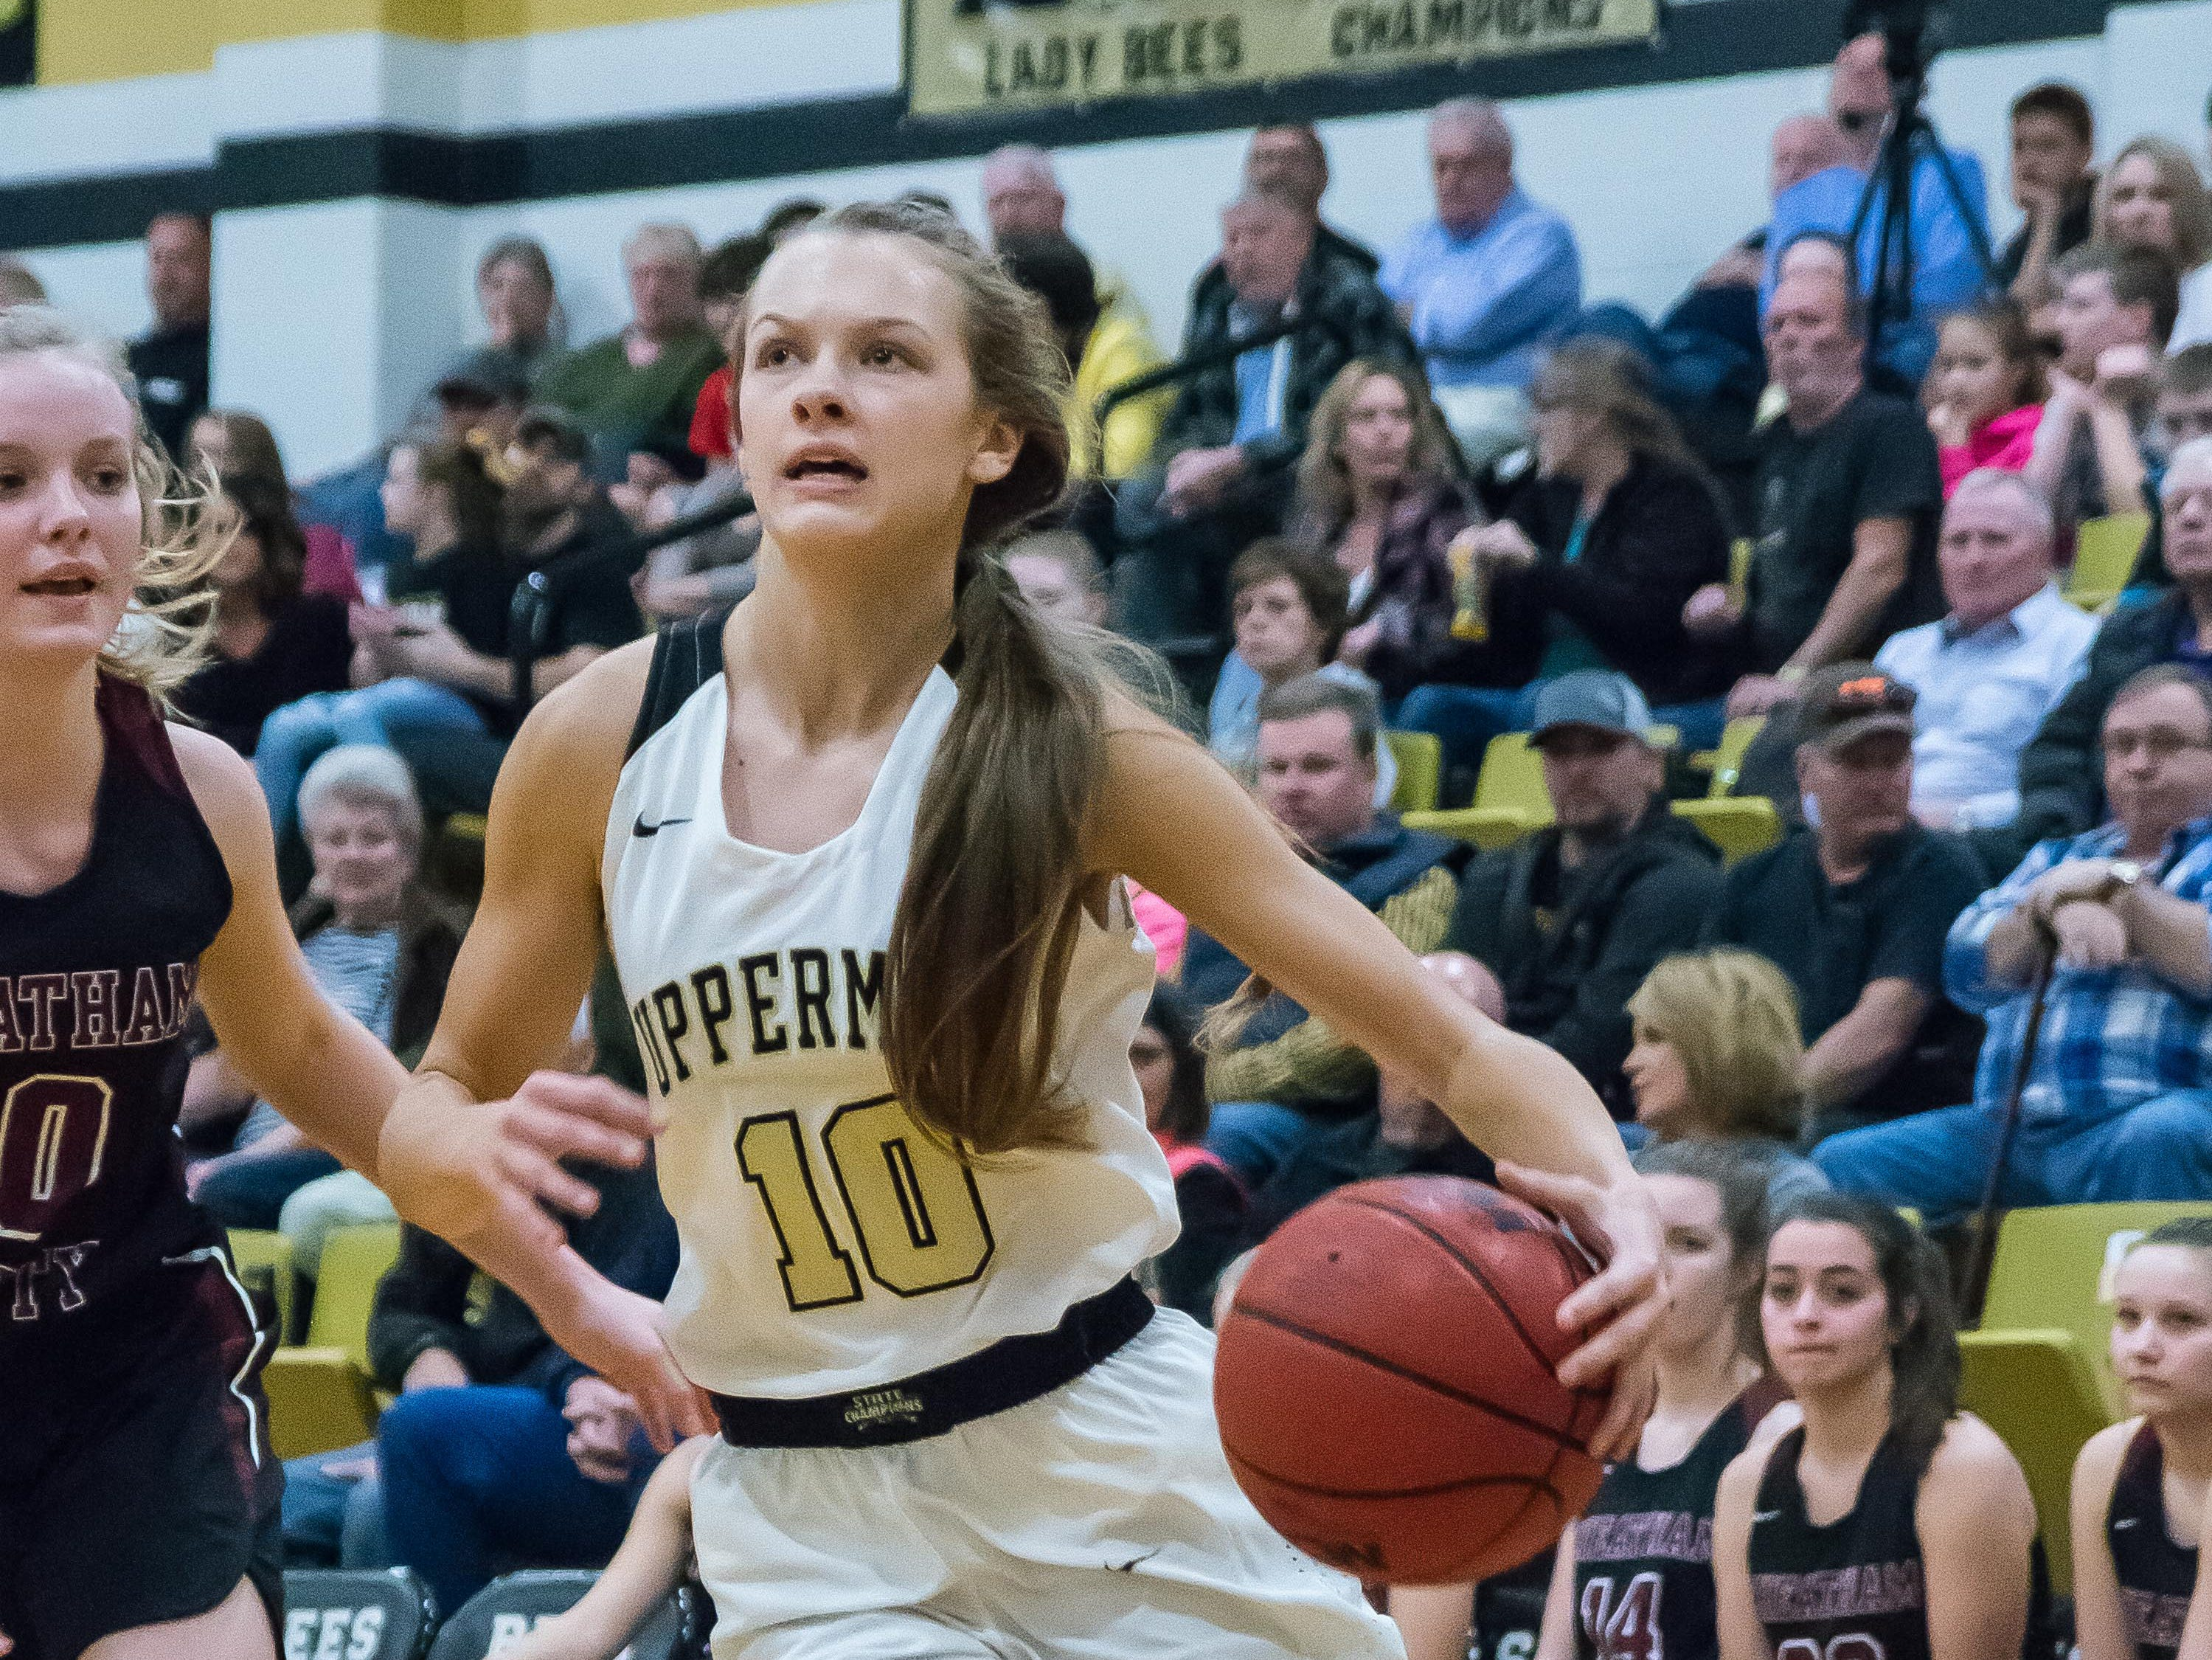 Upperman's Reagan Hurst had a big night.